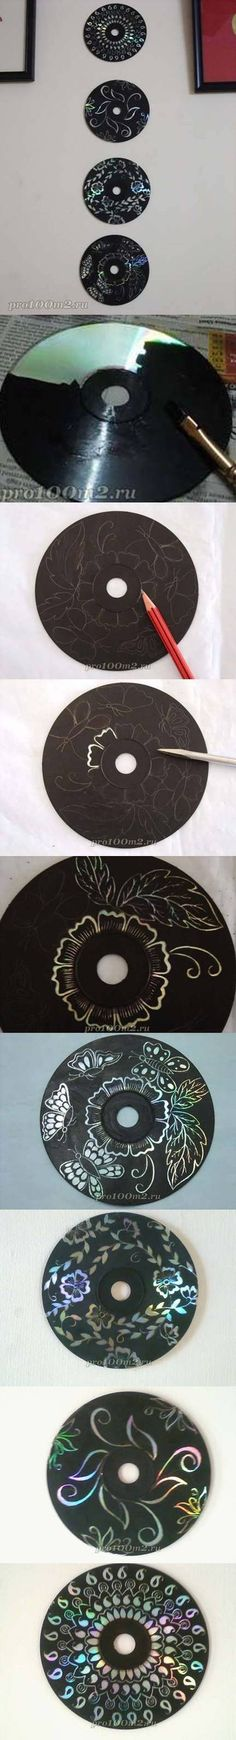 DIY Wall Decoration with CD DIY Projects | UsefulDIY.com Follow Us on Facebook ==> http://www.facebook.com/UsefulDiy